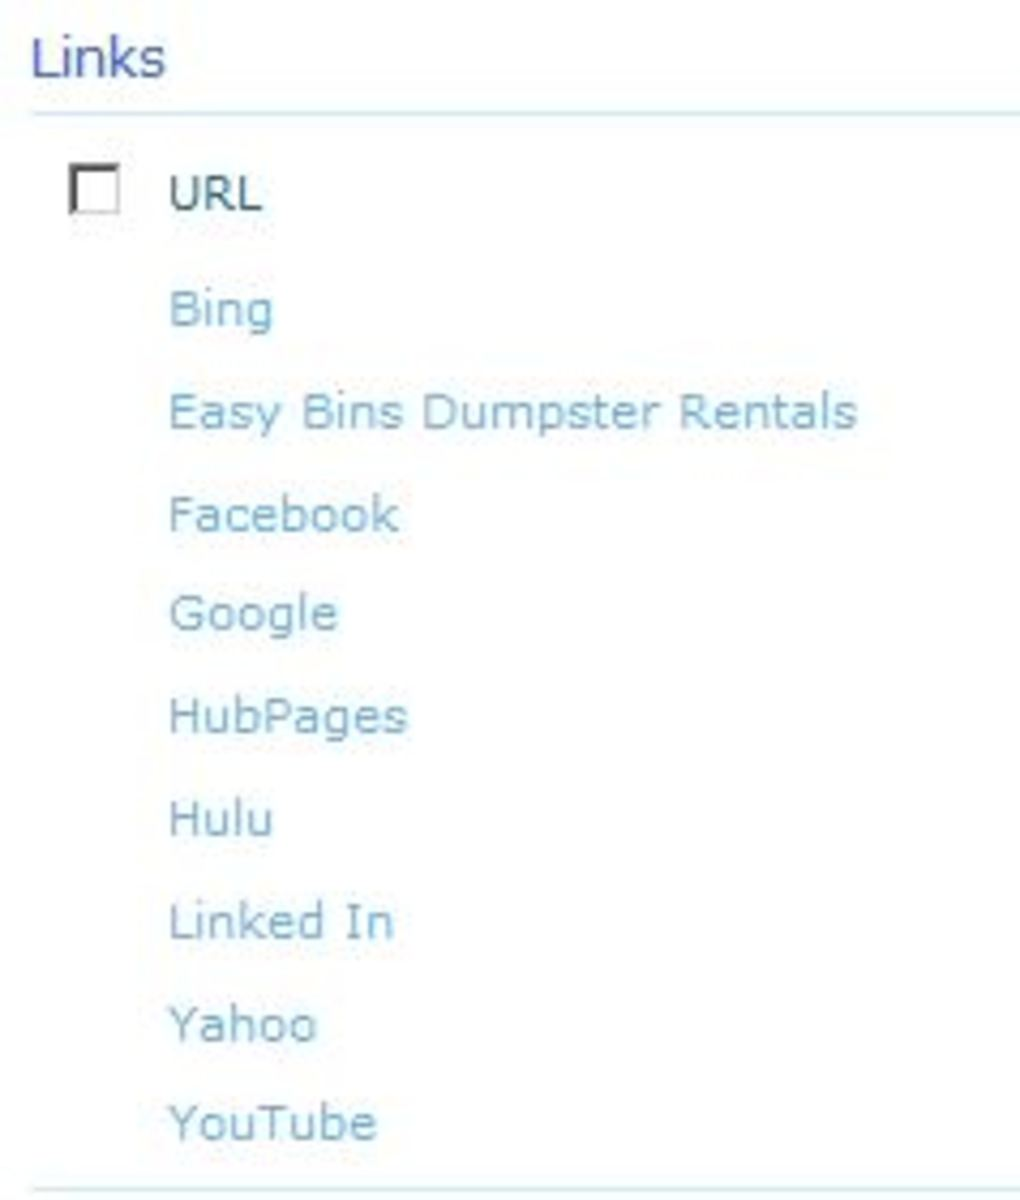 A typical list of links sorted in alphabetical order